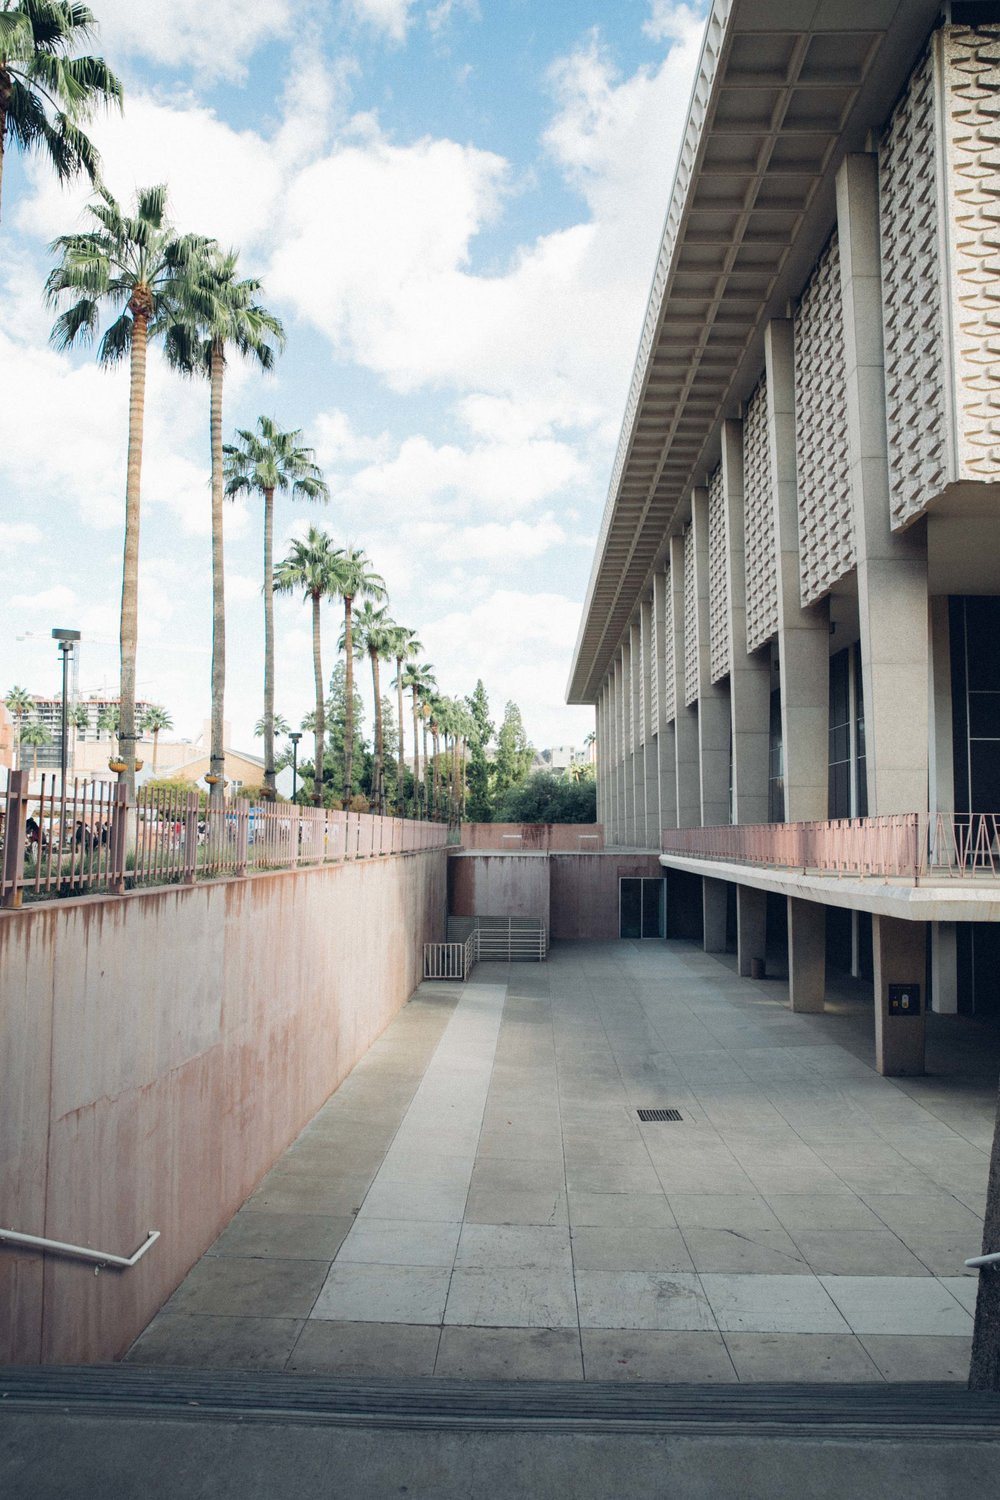 ASU architecture palm trees and concrete